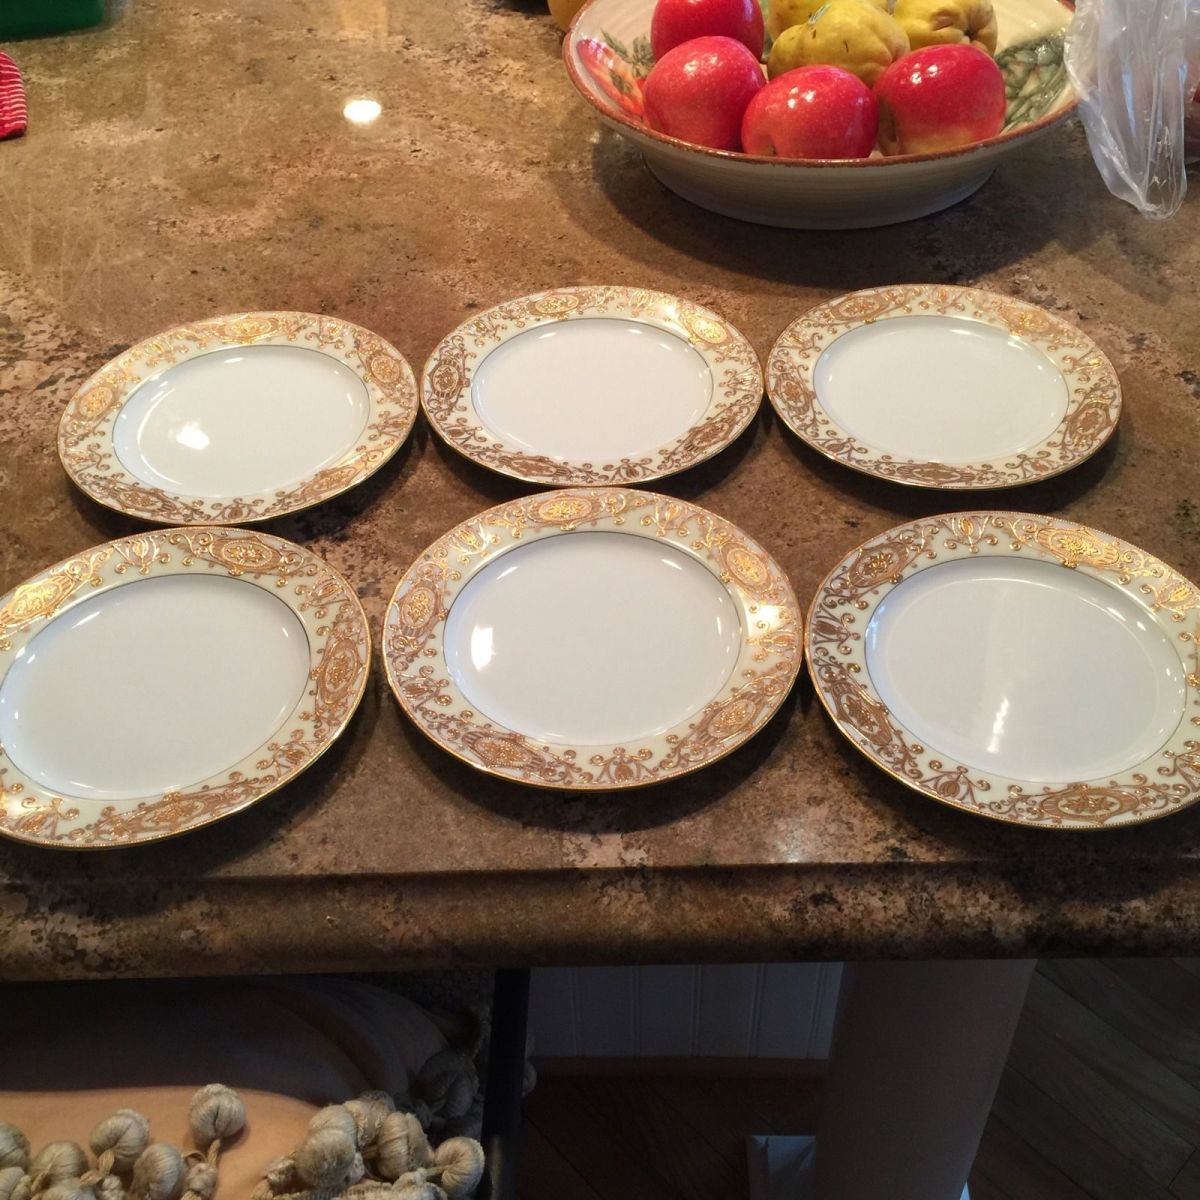 This set of plates is sized for salads or desserts.